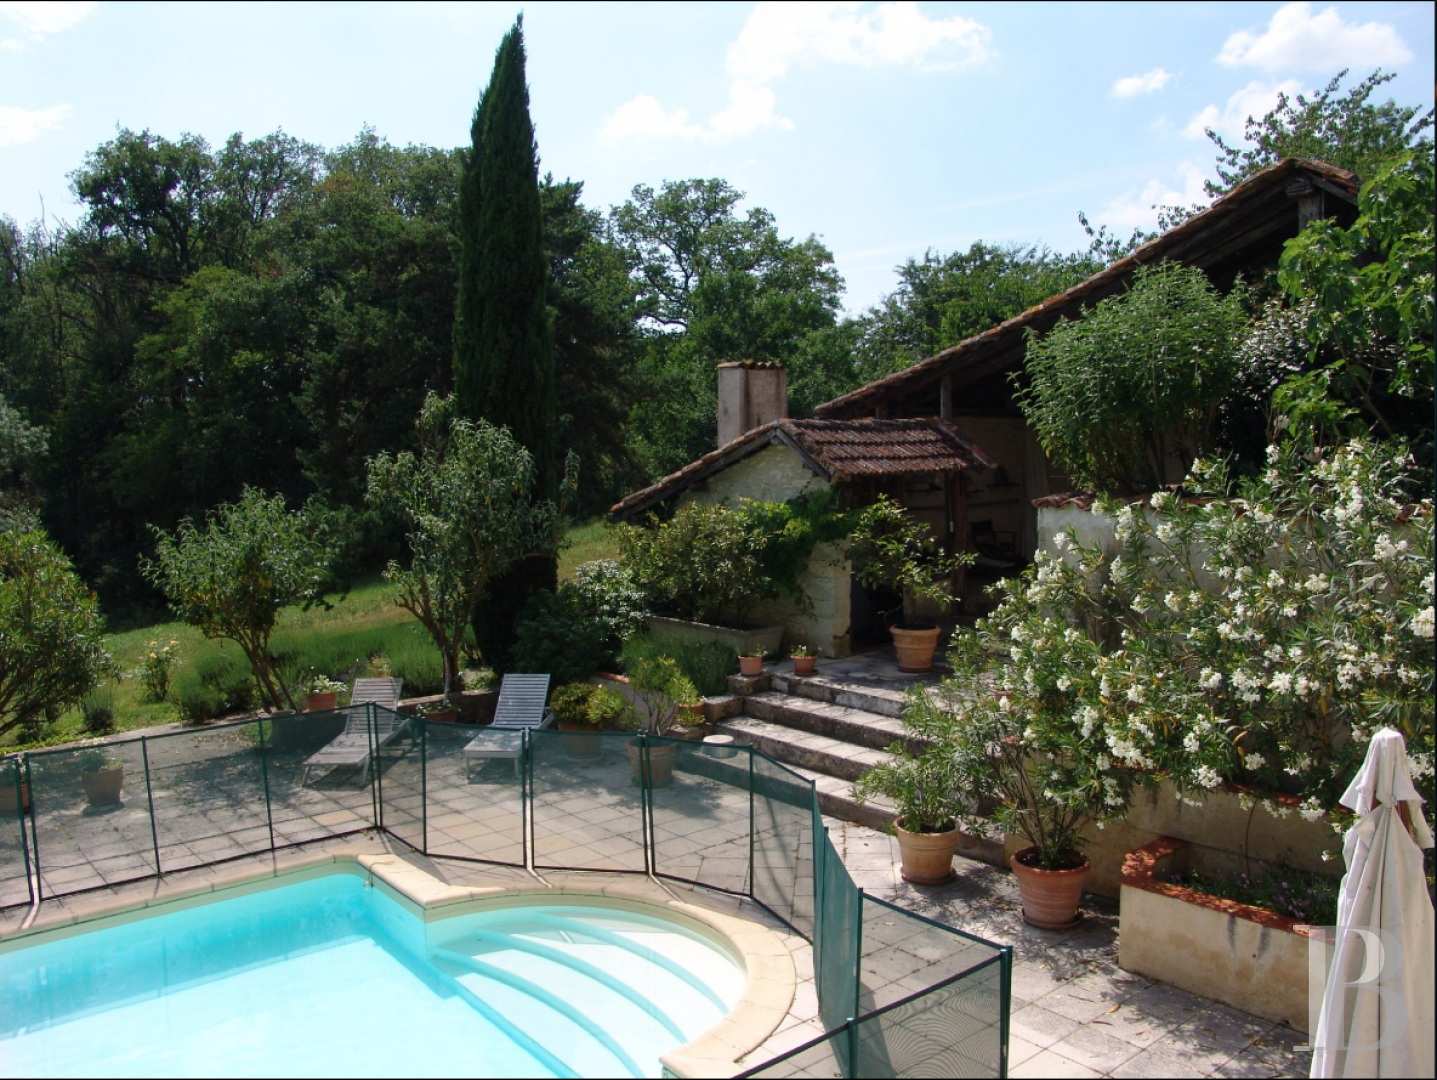 property for sale France midi pyrenees residences farms - 12 zoom